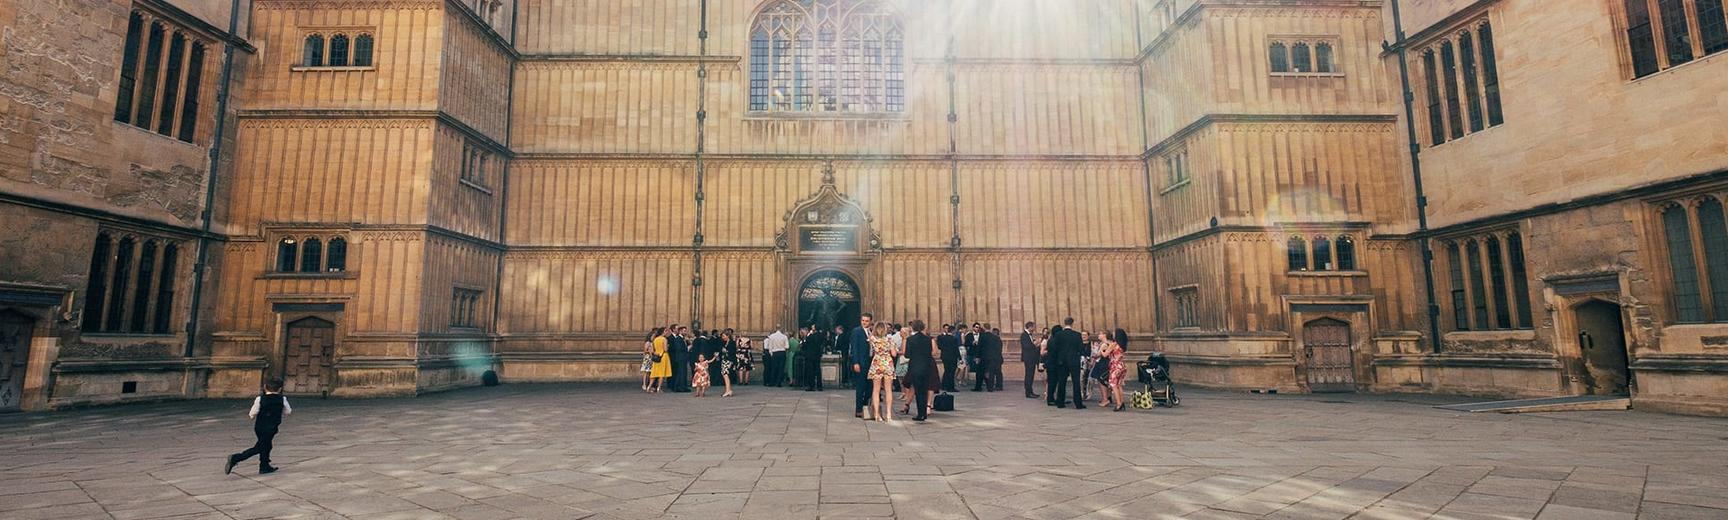 Event at the Old Schools Quadrangle, Bodleian Libraries, Oxford